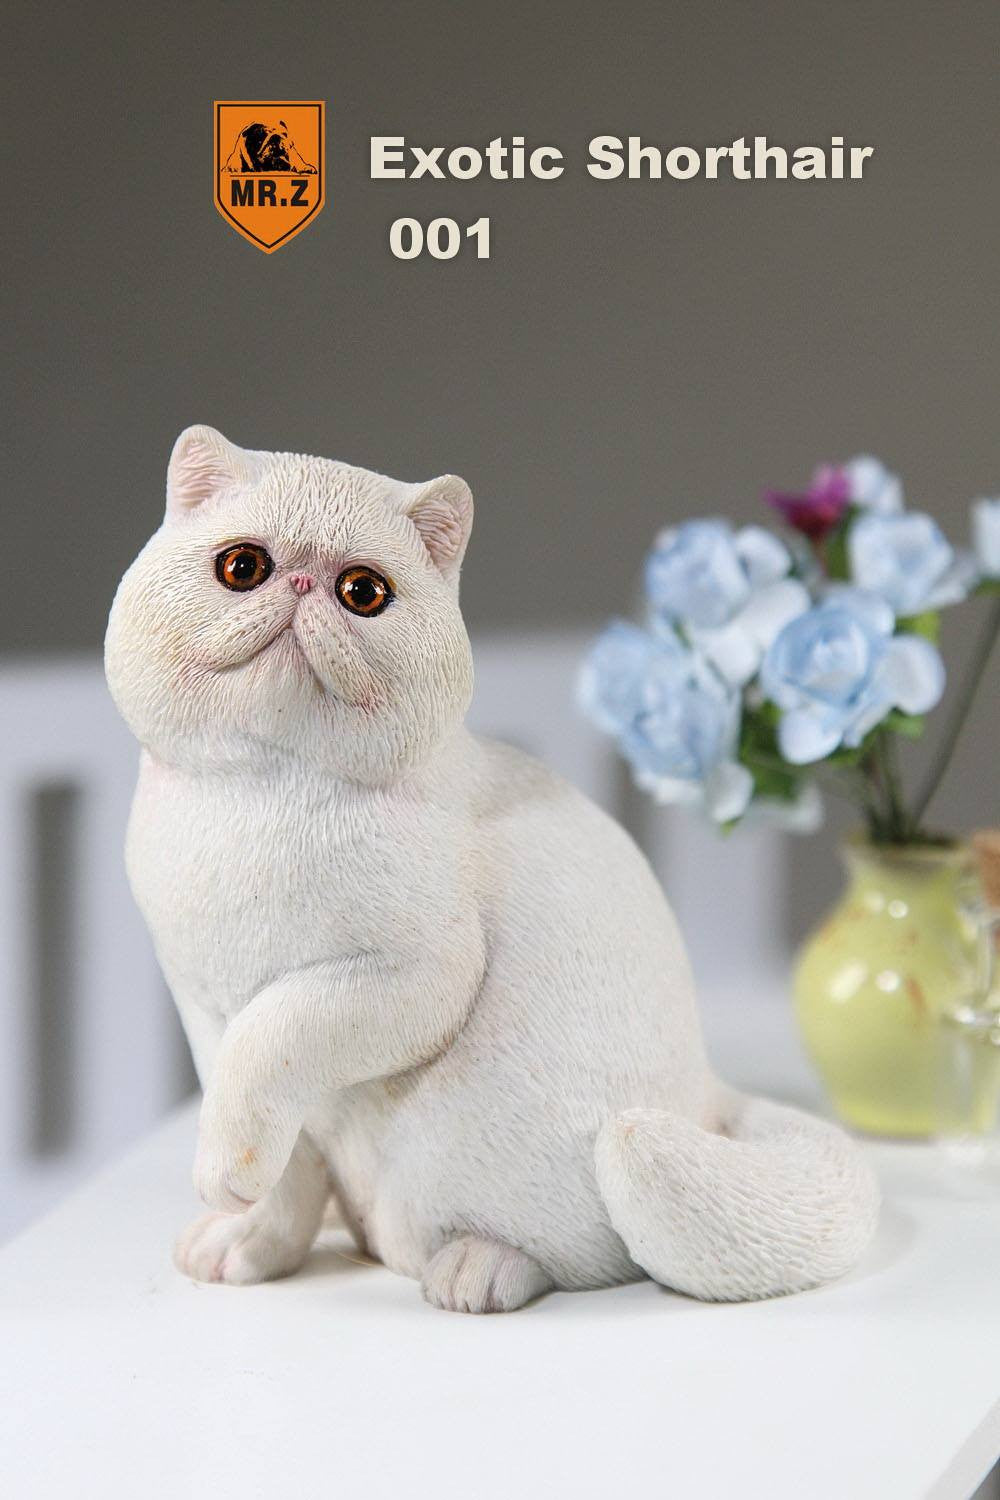 MR.Z - Real Animal Series No.8 - 1/6th Scale Exotic Shorthair Cat (Garfield) 001-005 - Marvelous Toys - 6